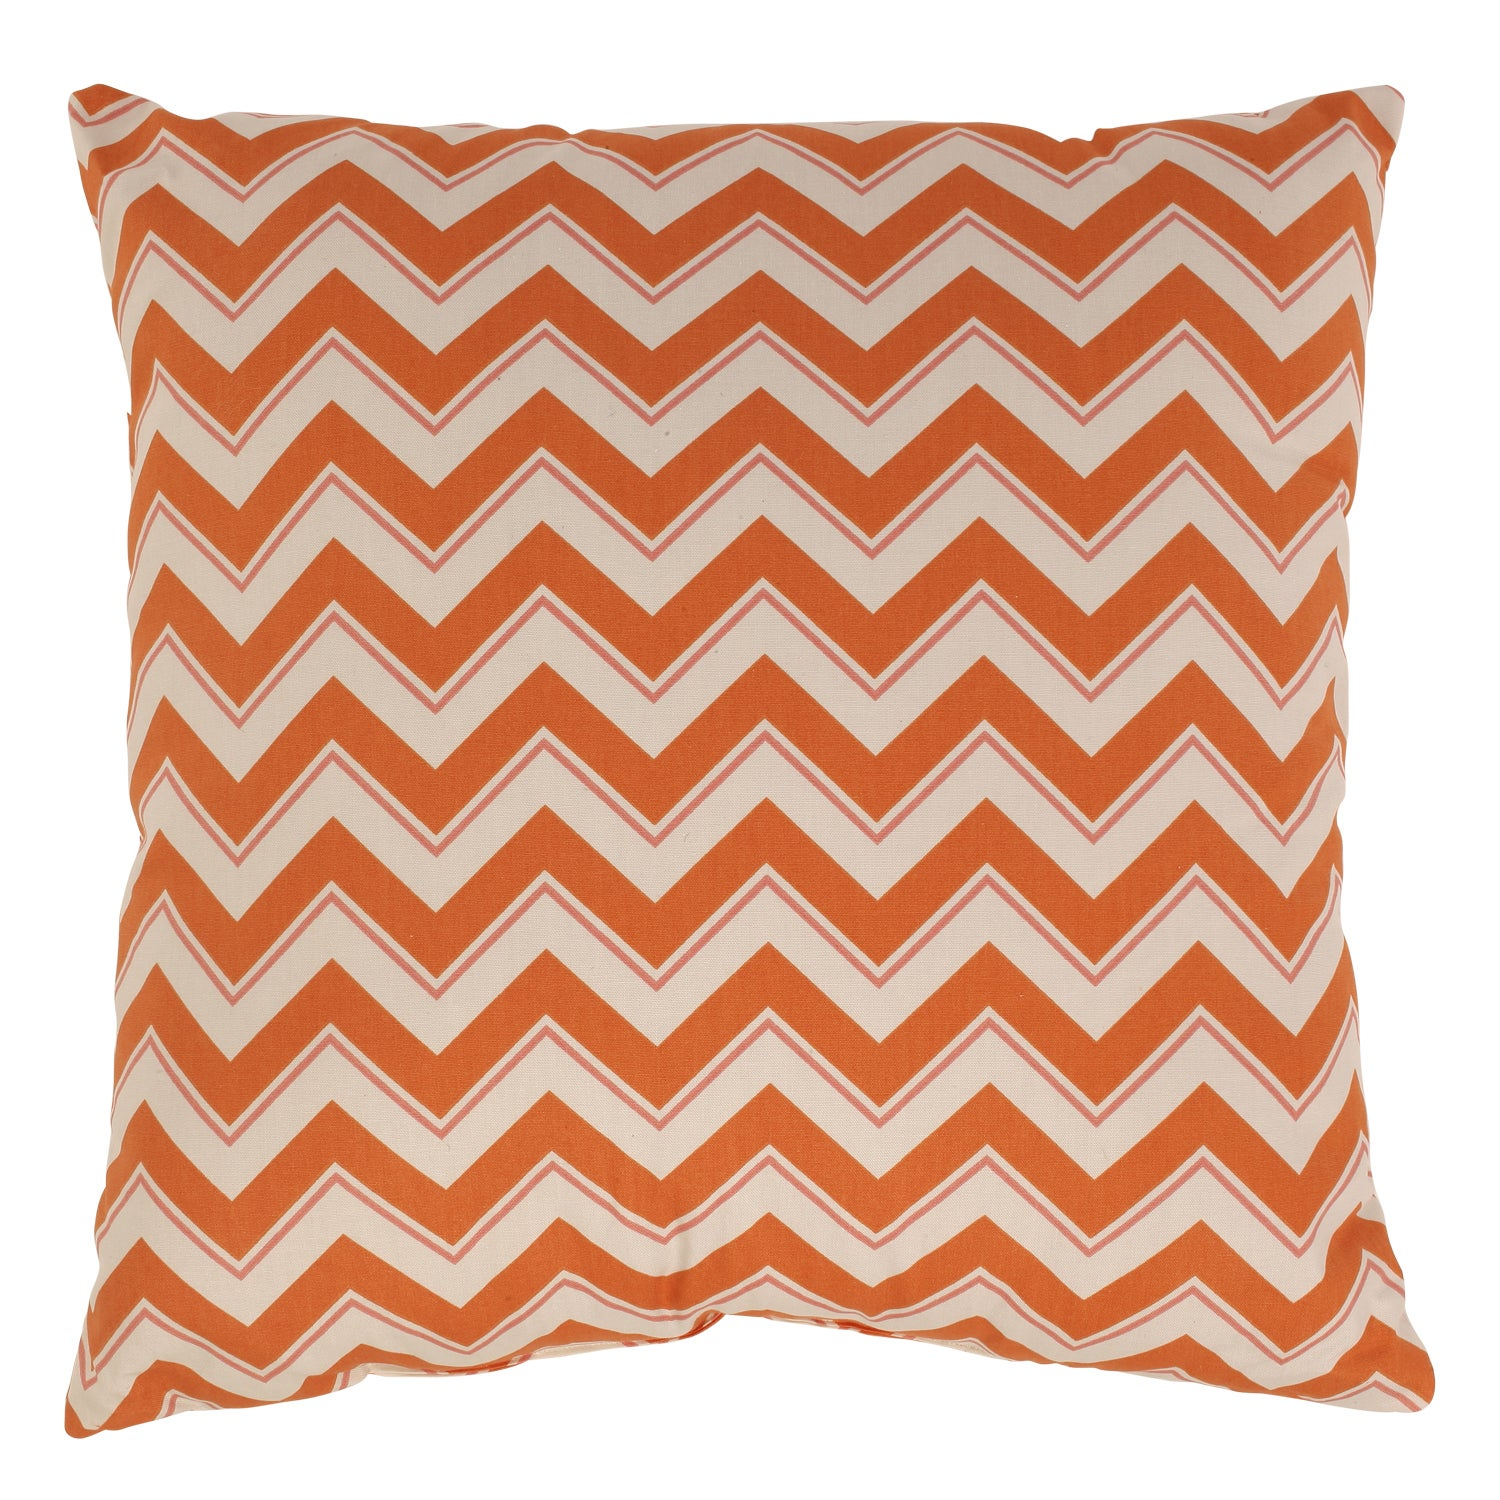 Chevron 23-inch Throw Floor Pillow